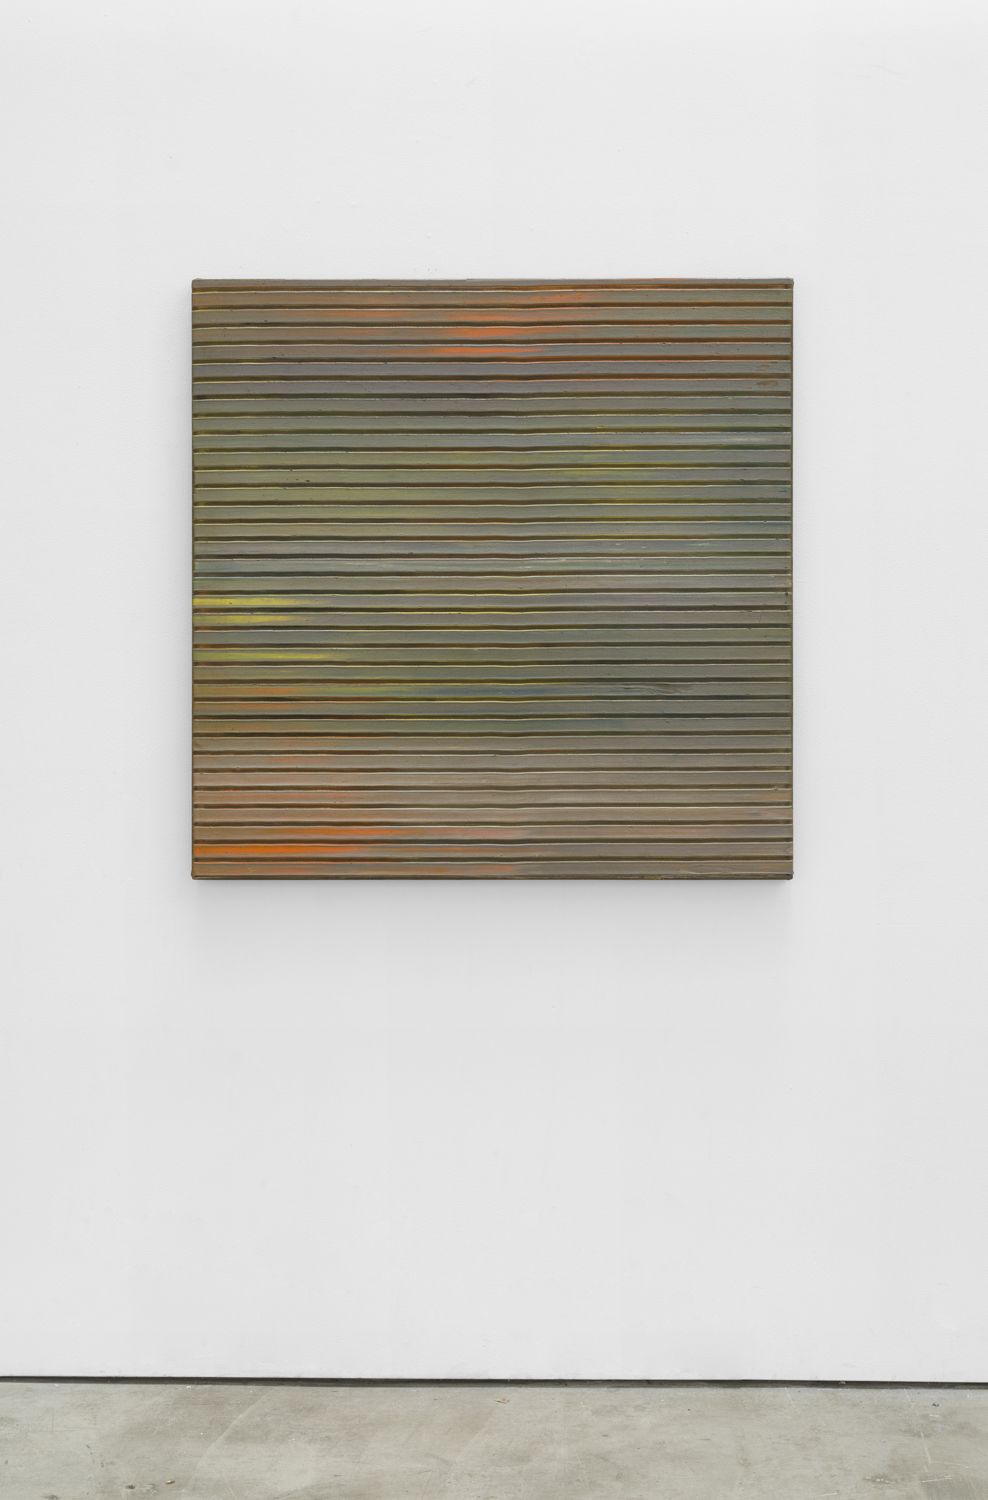 Jack Whitten, Untitled I, 1974–1975